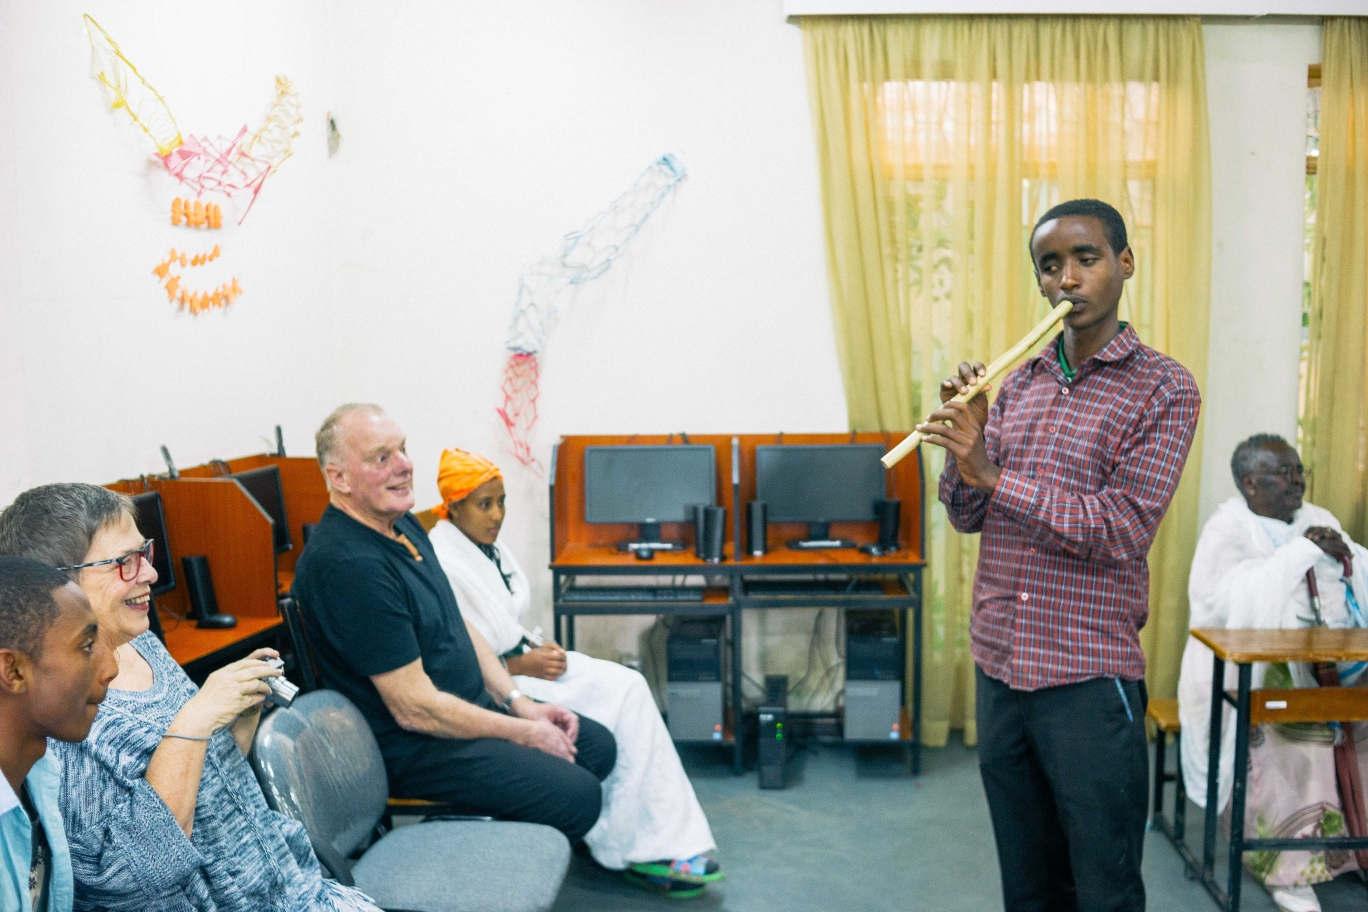 Biruh, a youth who is visually impaired playing the flute